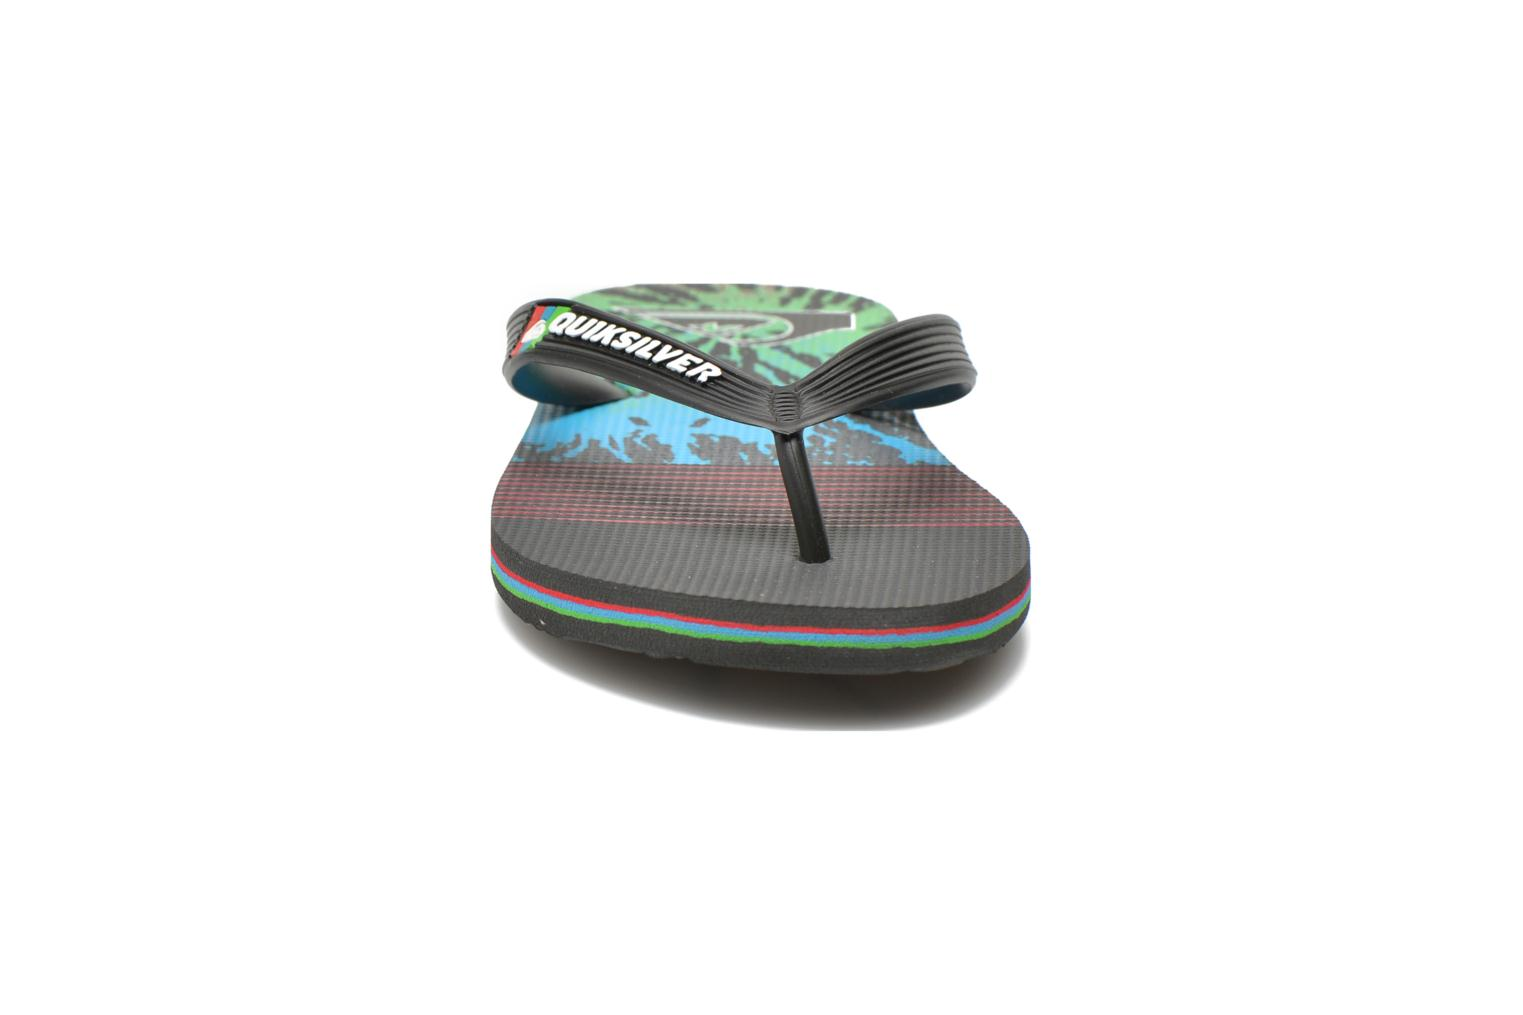 Molokai Ag47 Re B Sndl Xkrg Black/red/green